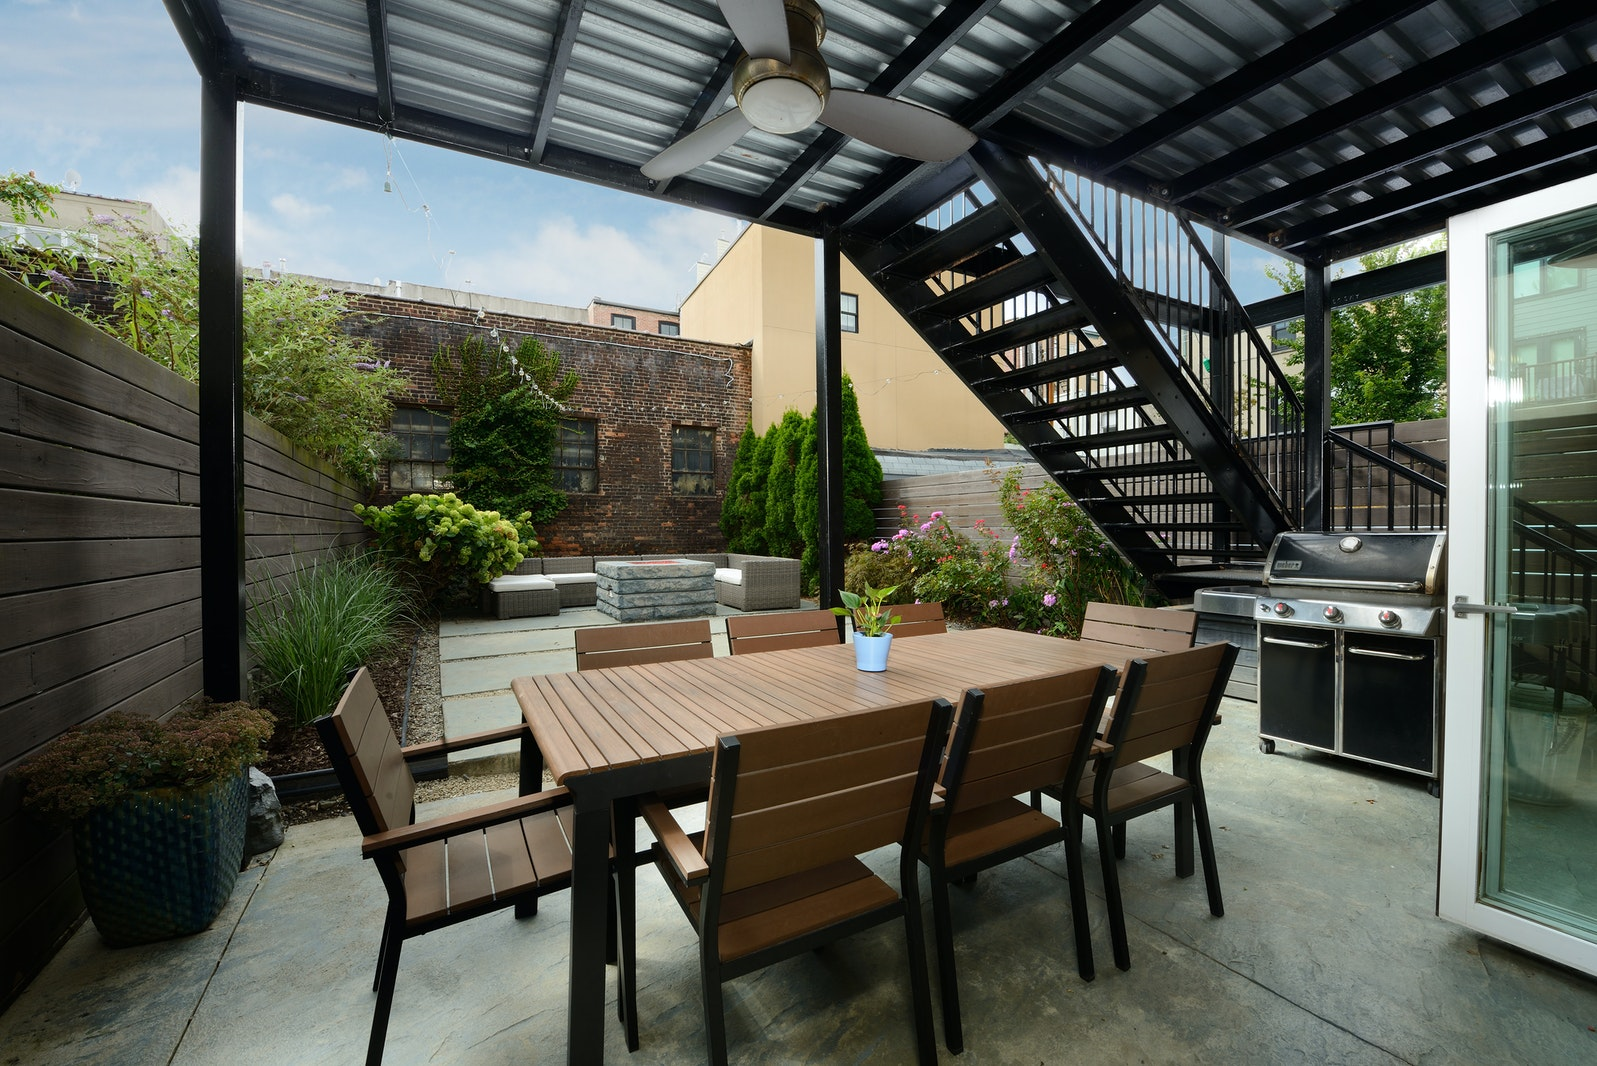 728 Bloomfield Street 1, Hoboken, New Jersey, 07030, $1,150,000, Property For Sale, Halstead Real Estate, Photo 14